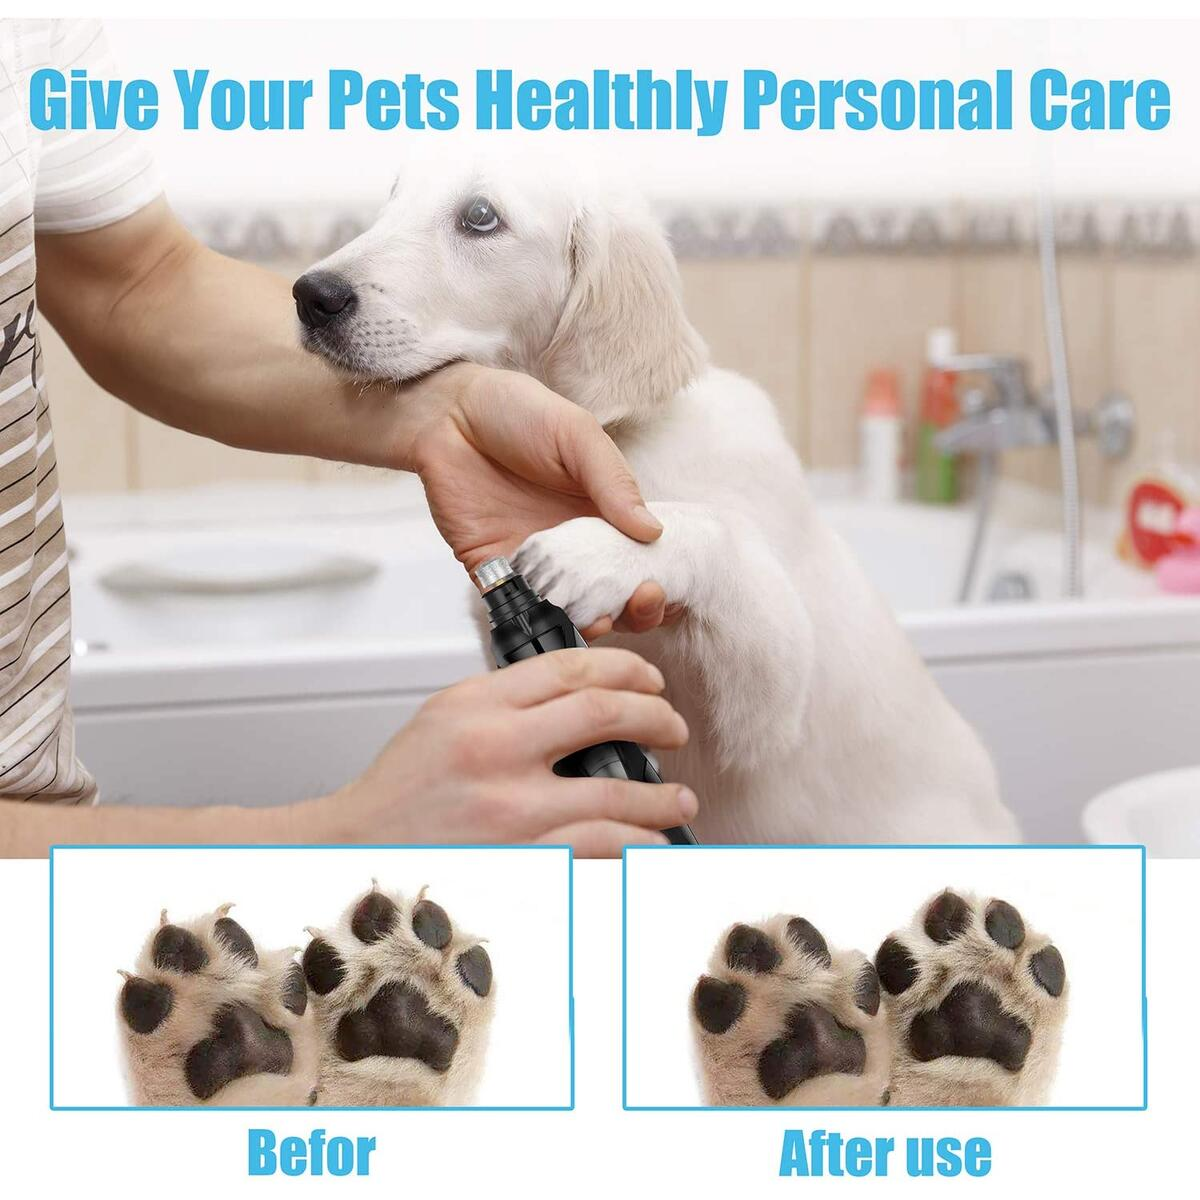 Wixann Dog Nail Grinder with Light, Upgraded ProfessionalLow Noise 2 Speed Pet Nail Grinder Electric Rechargeable Pet Nail Trimmer Painless Paws Grooming Trimming for Small Medium Large Dogs Cats